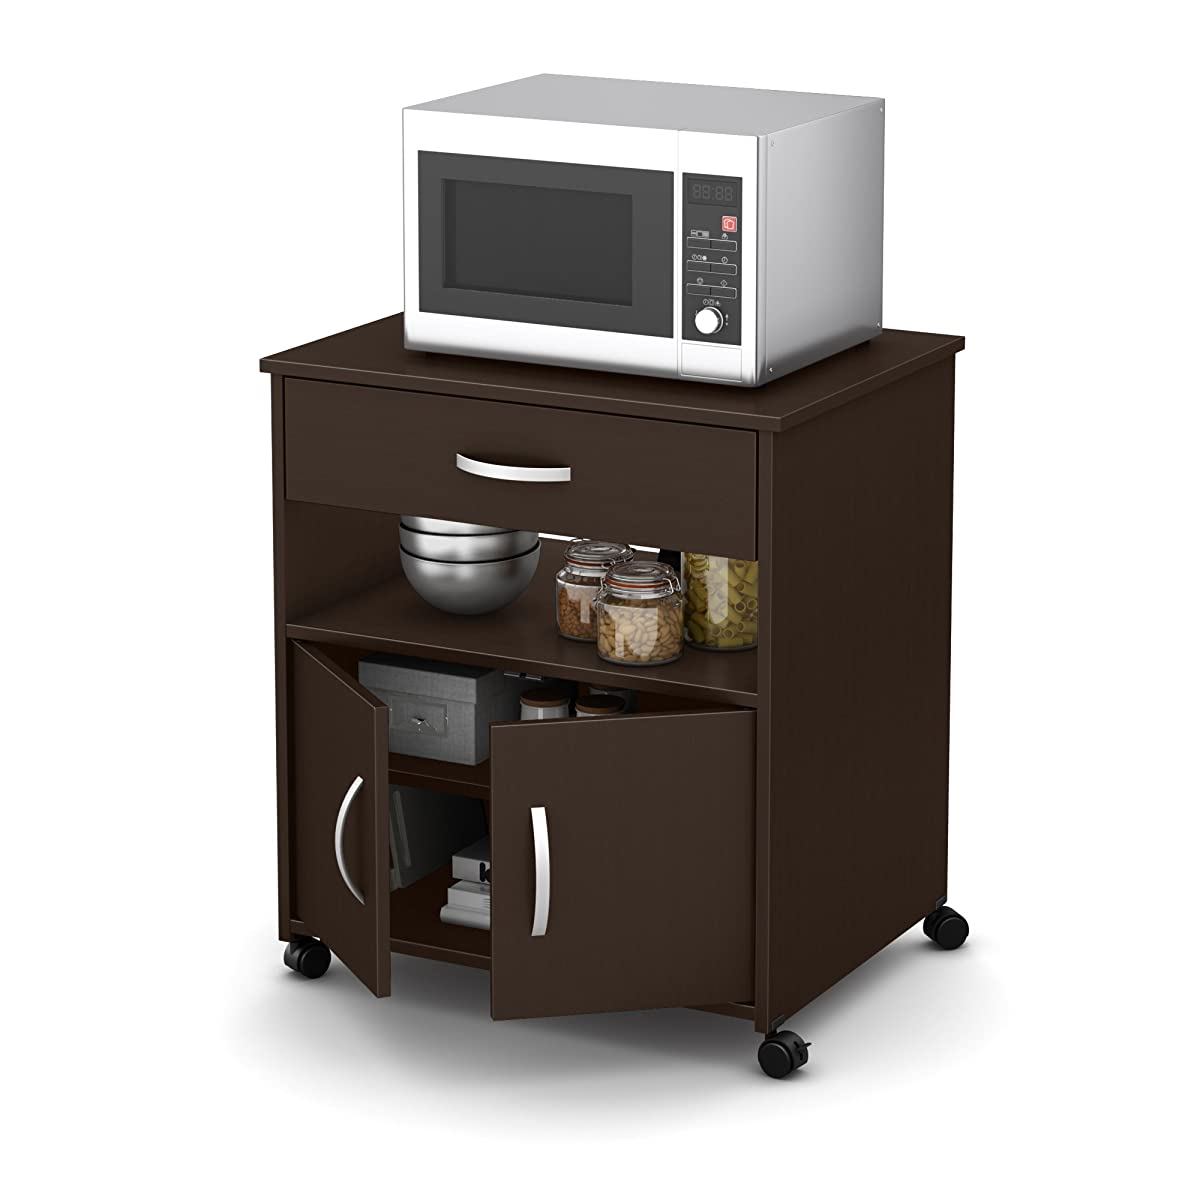 South Shore Fiesta Microwave Cart on Wheels, Chocolate